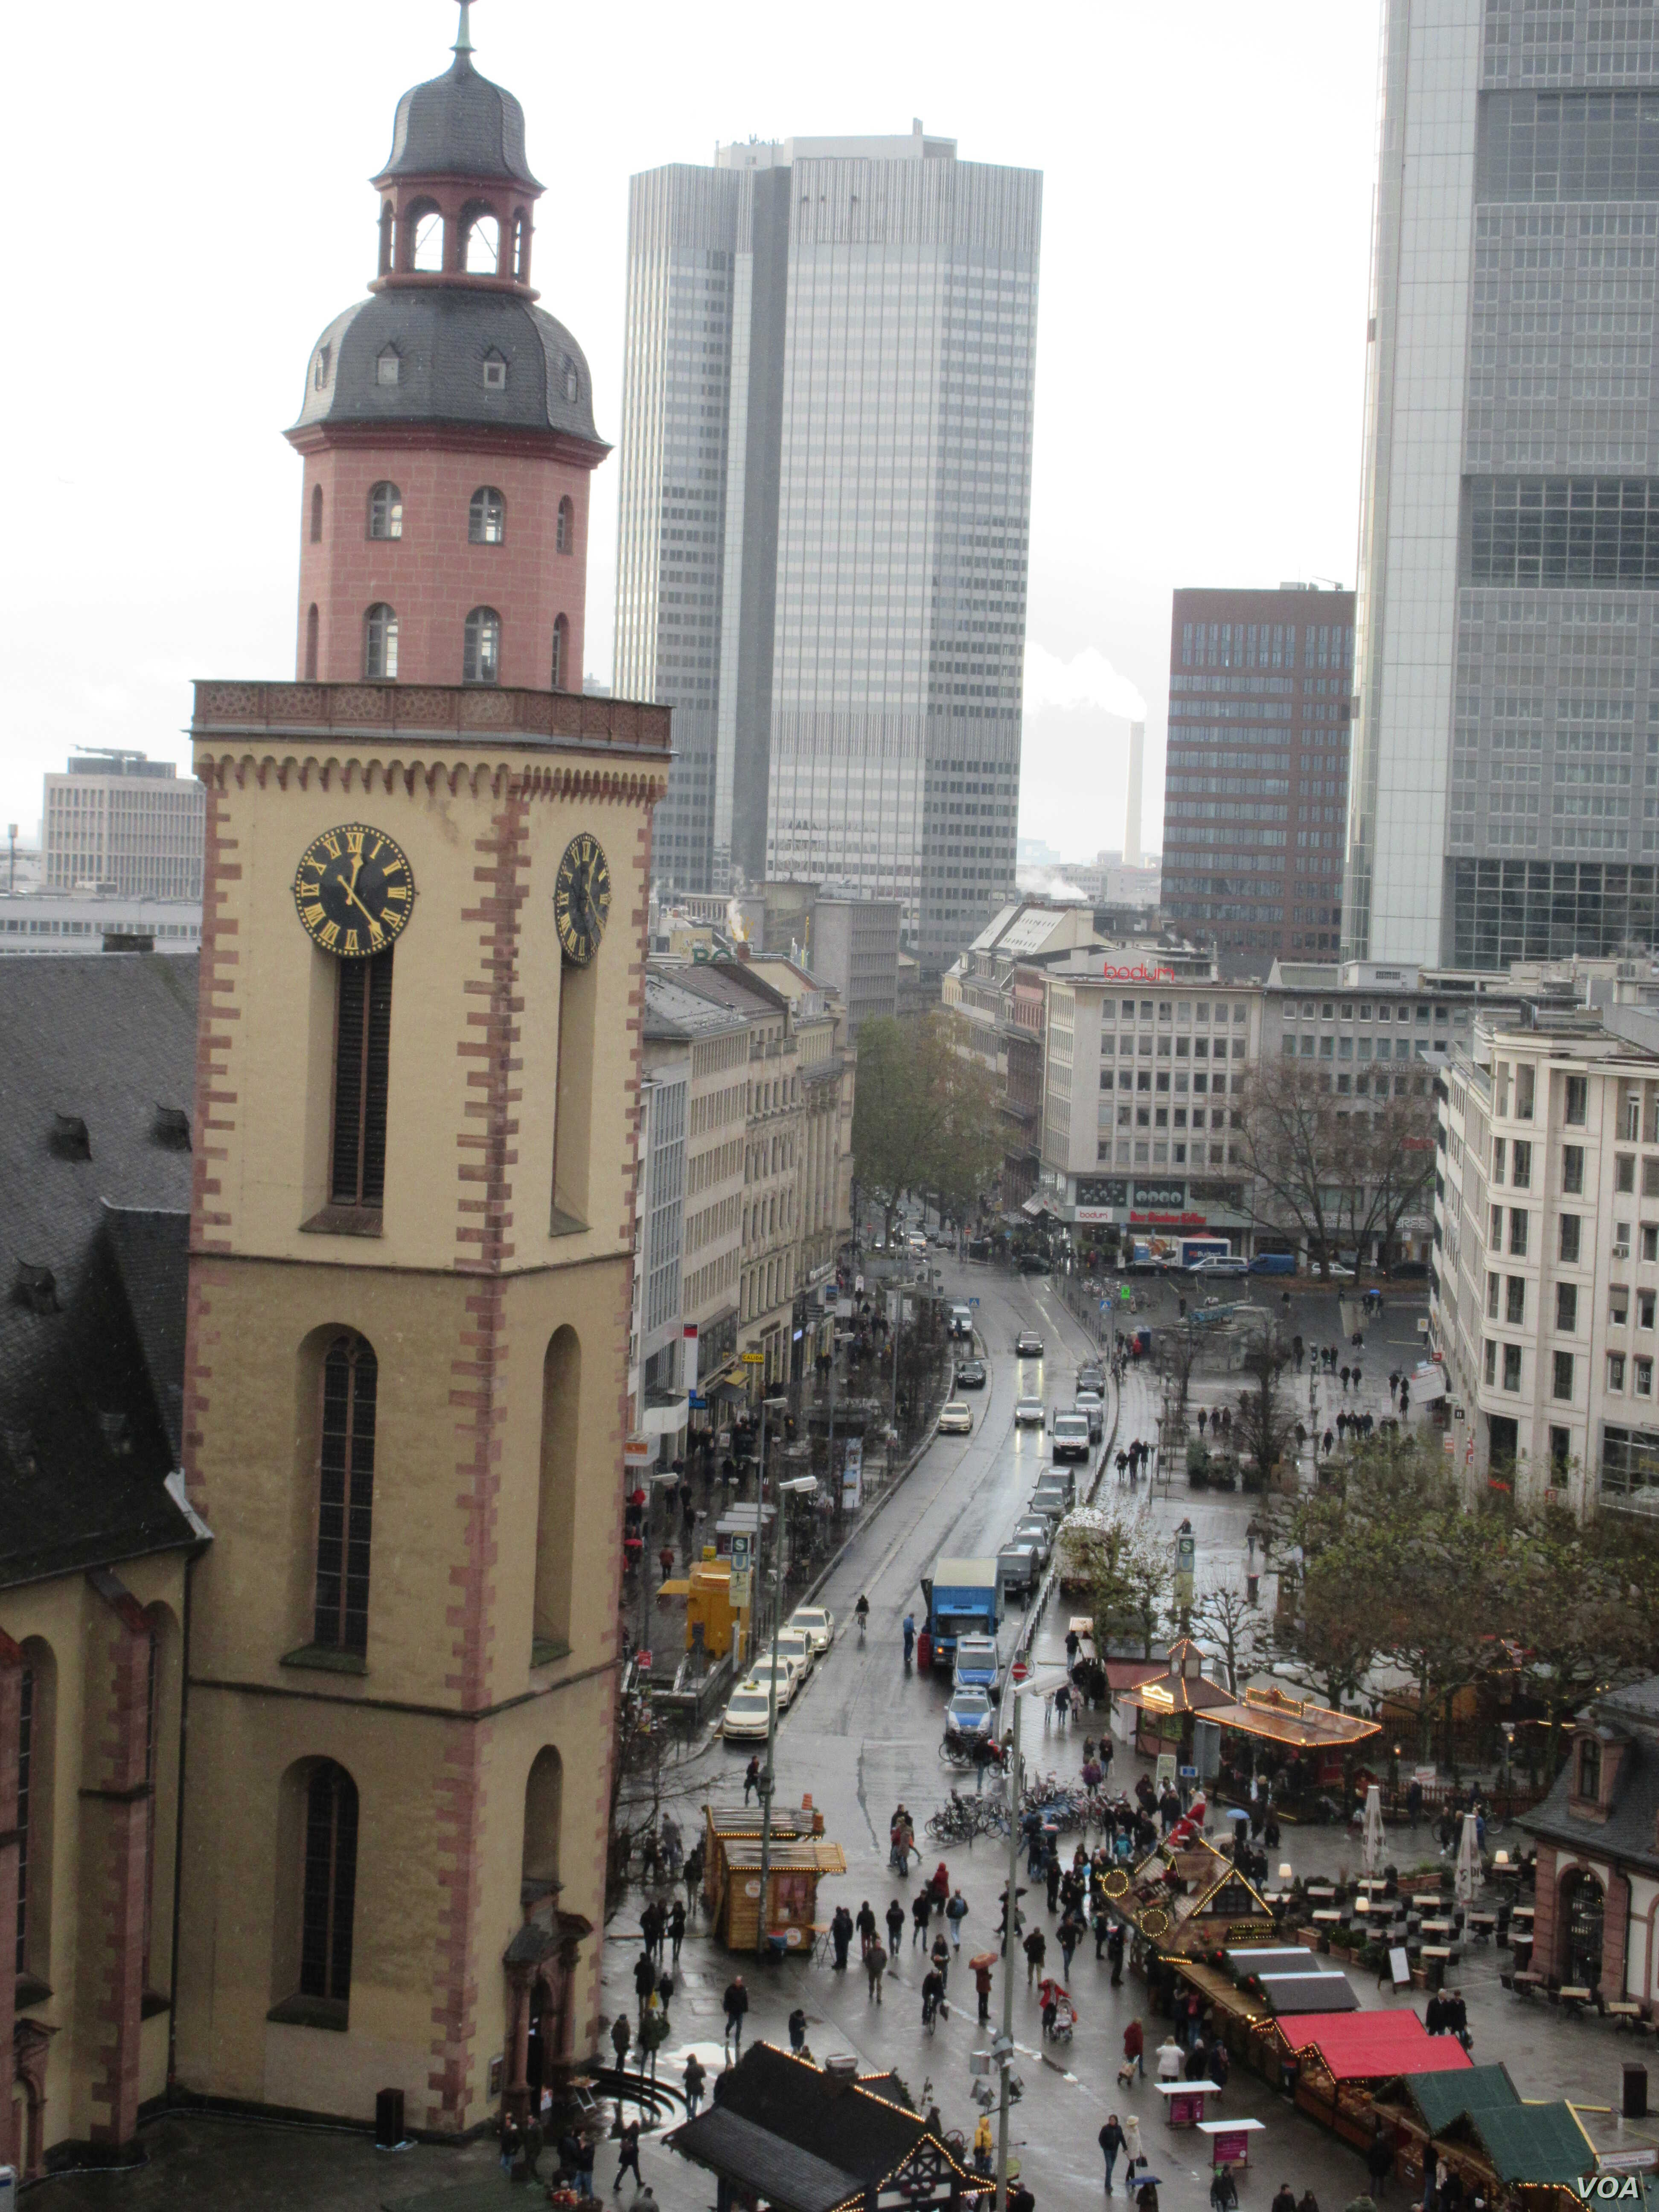 The open-air market in Frankfurt city center is seen in this Nov. 28, 2015 photo (A. Tanzeem/VOA)